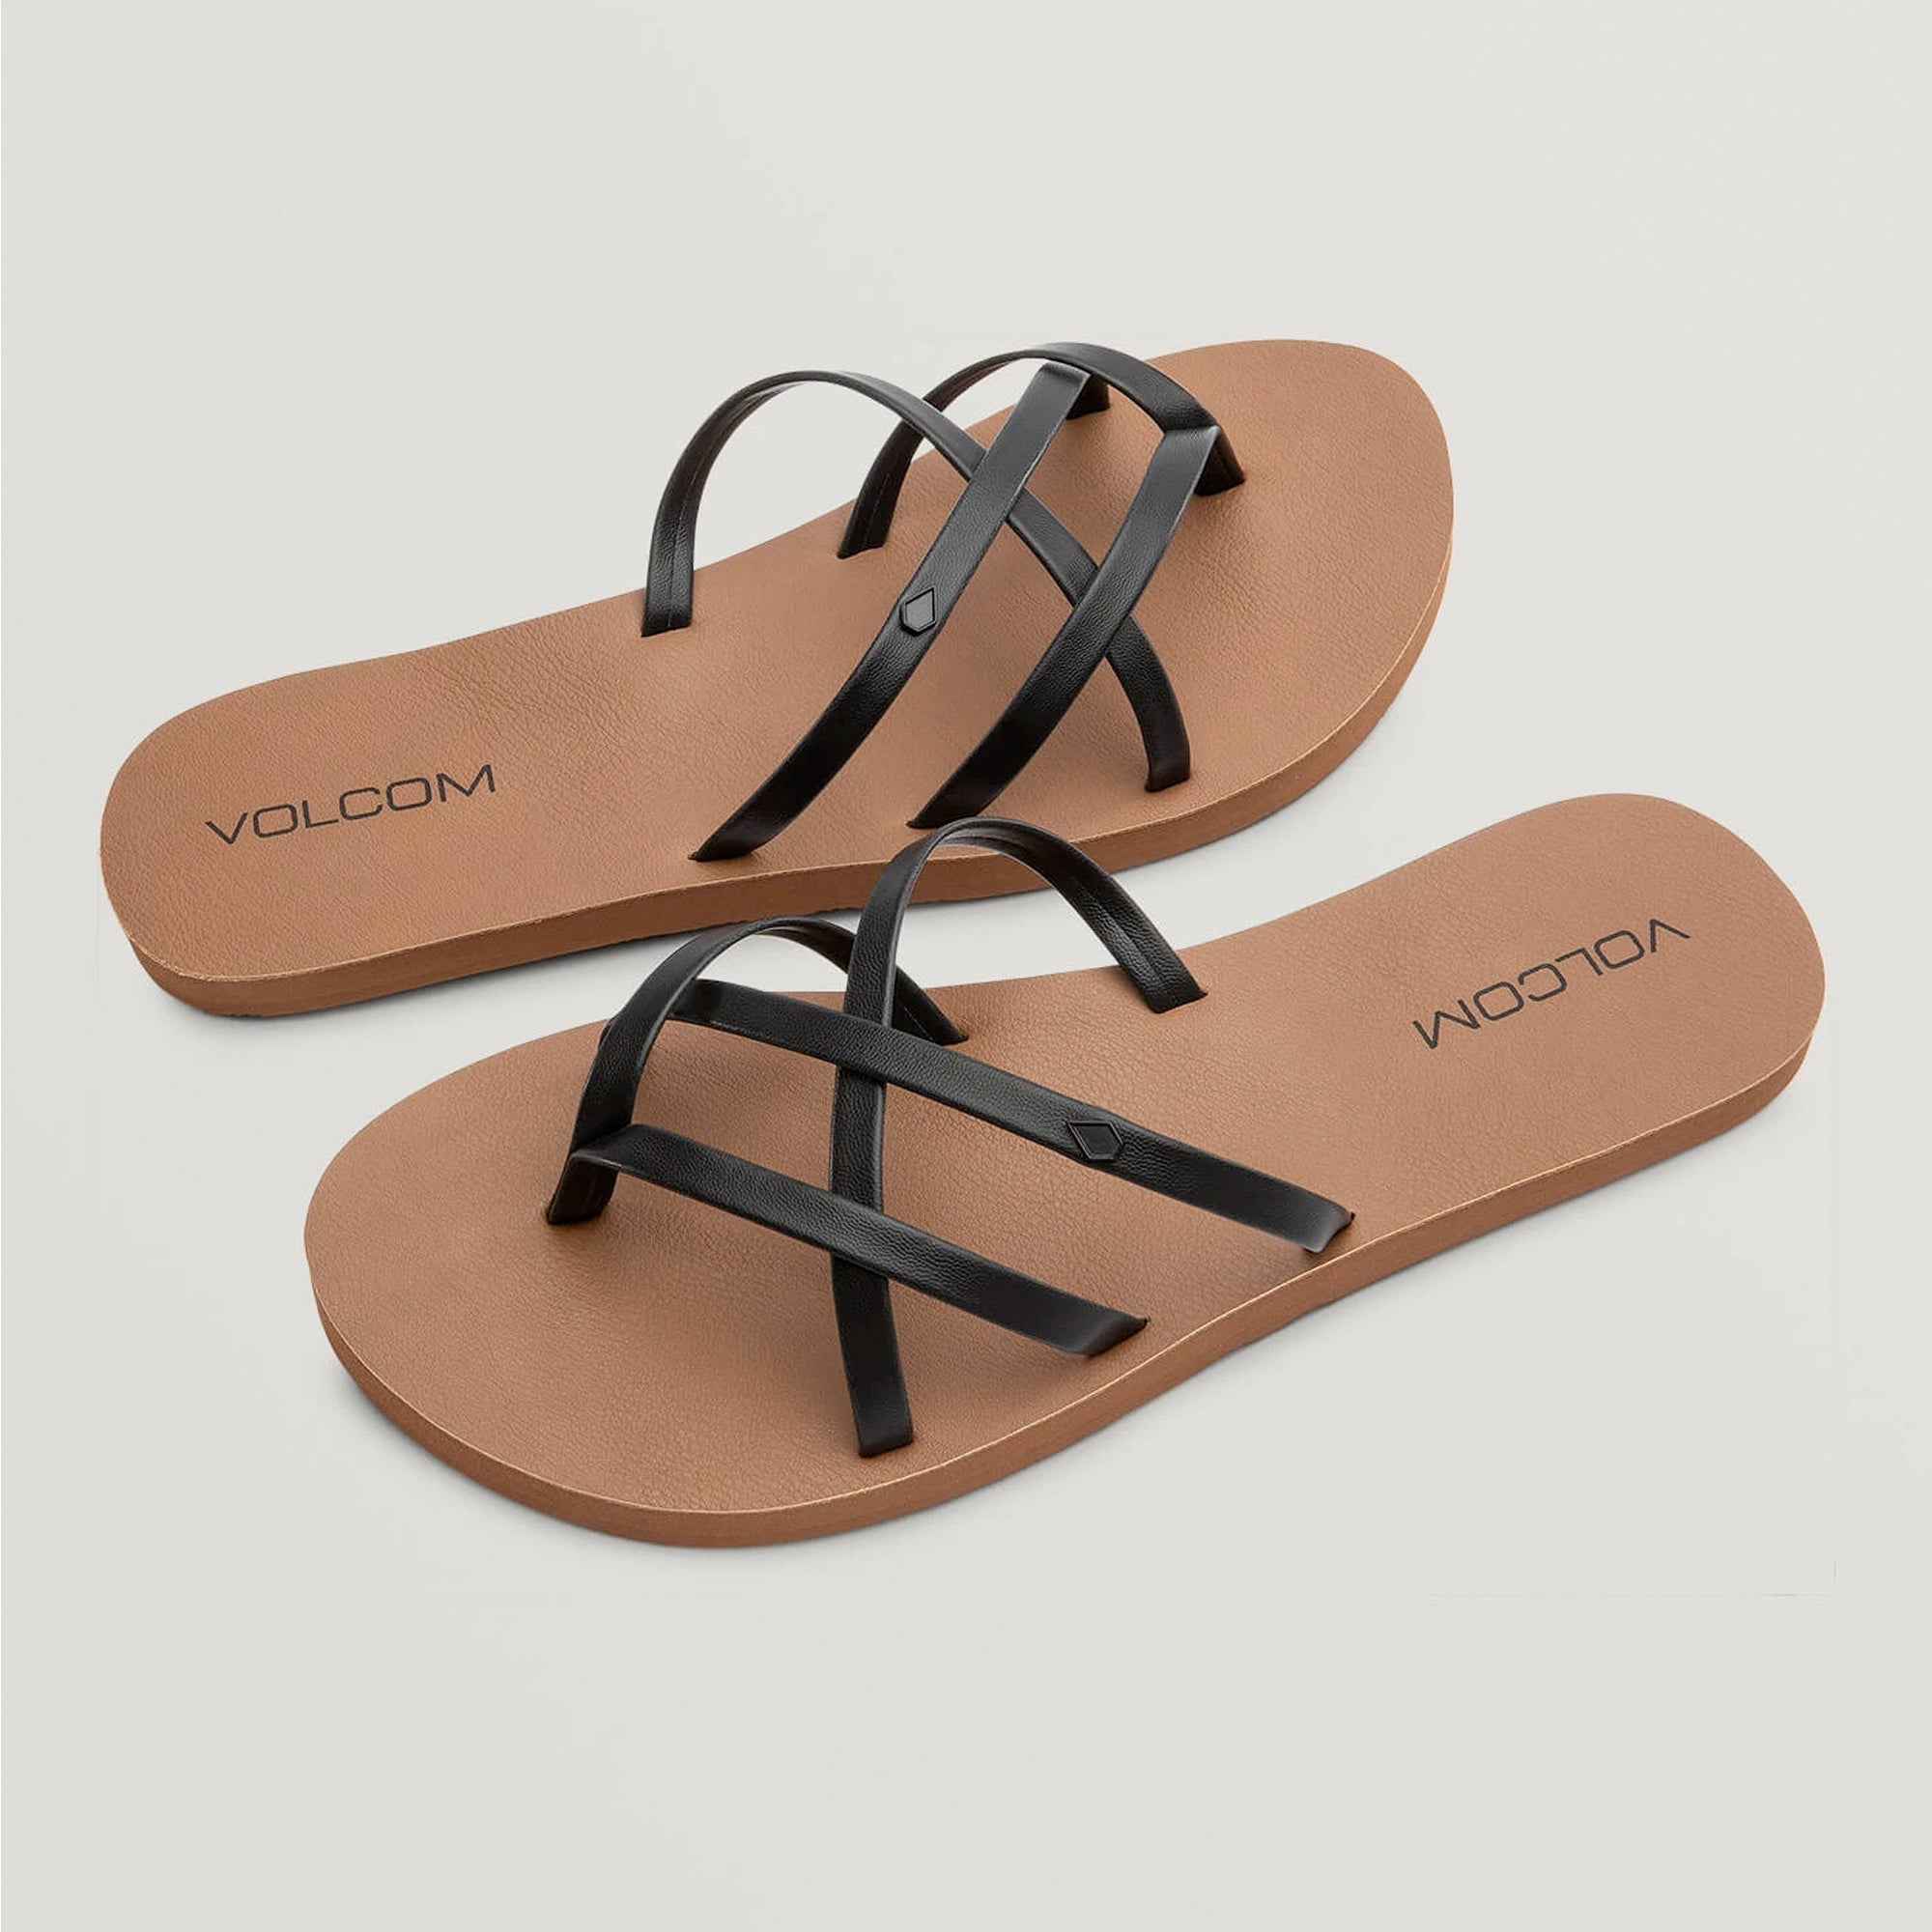 Volcom New School II Women's Sandals